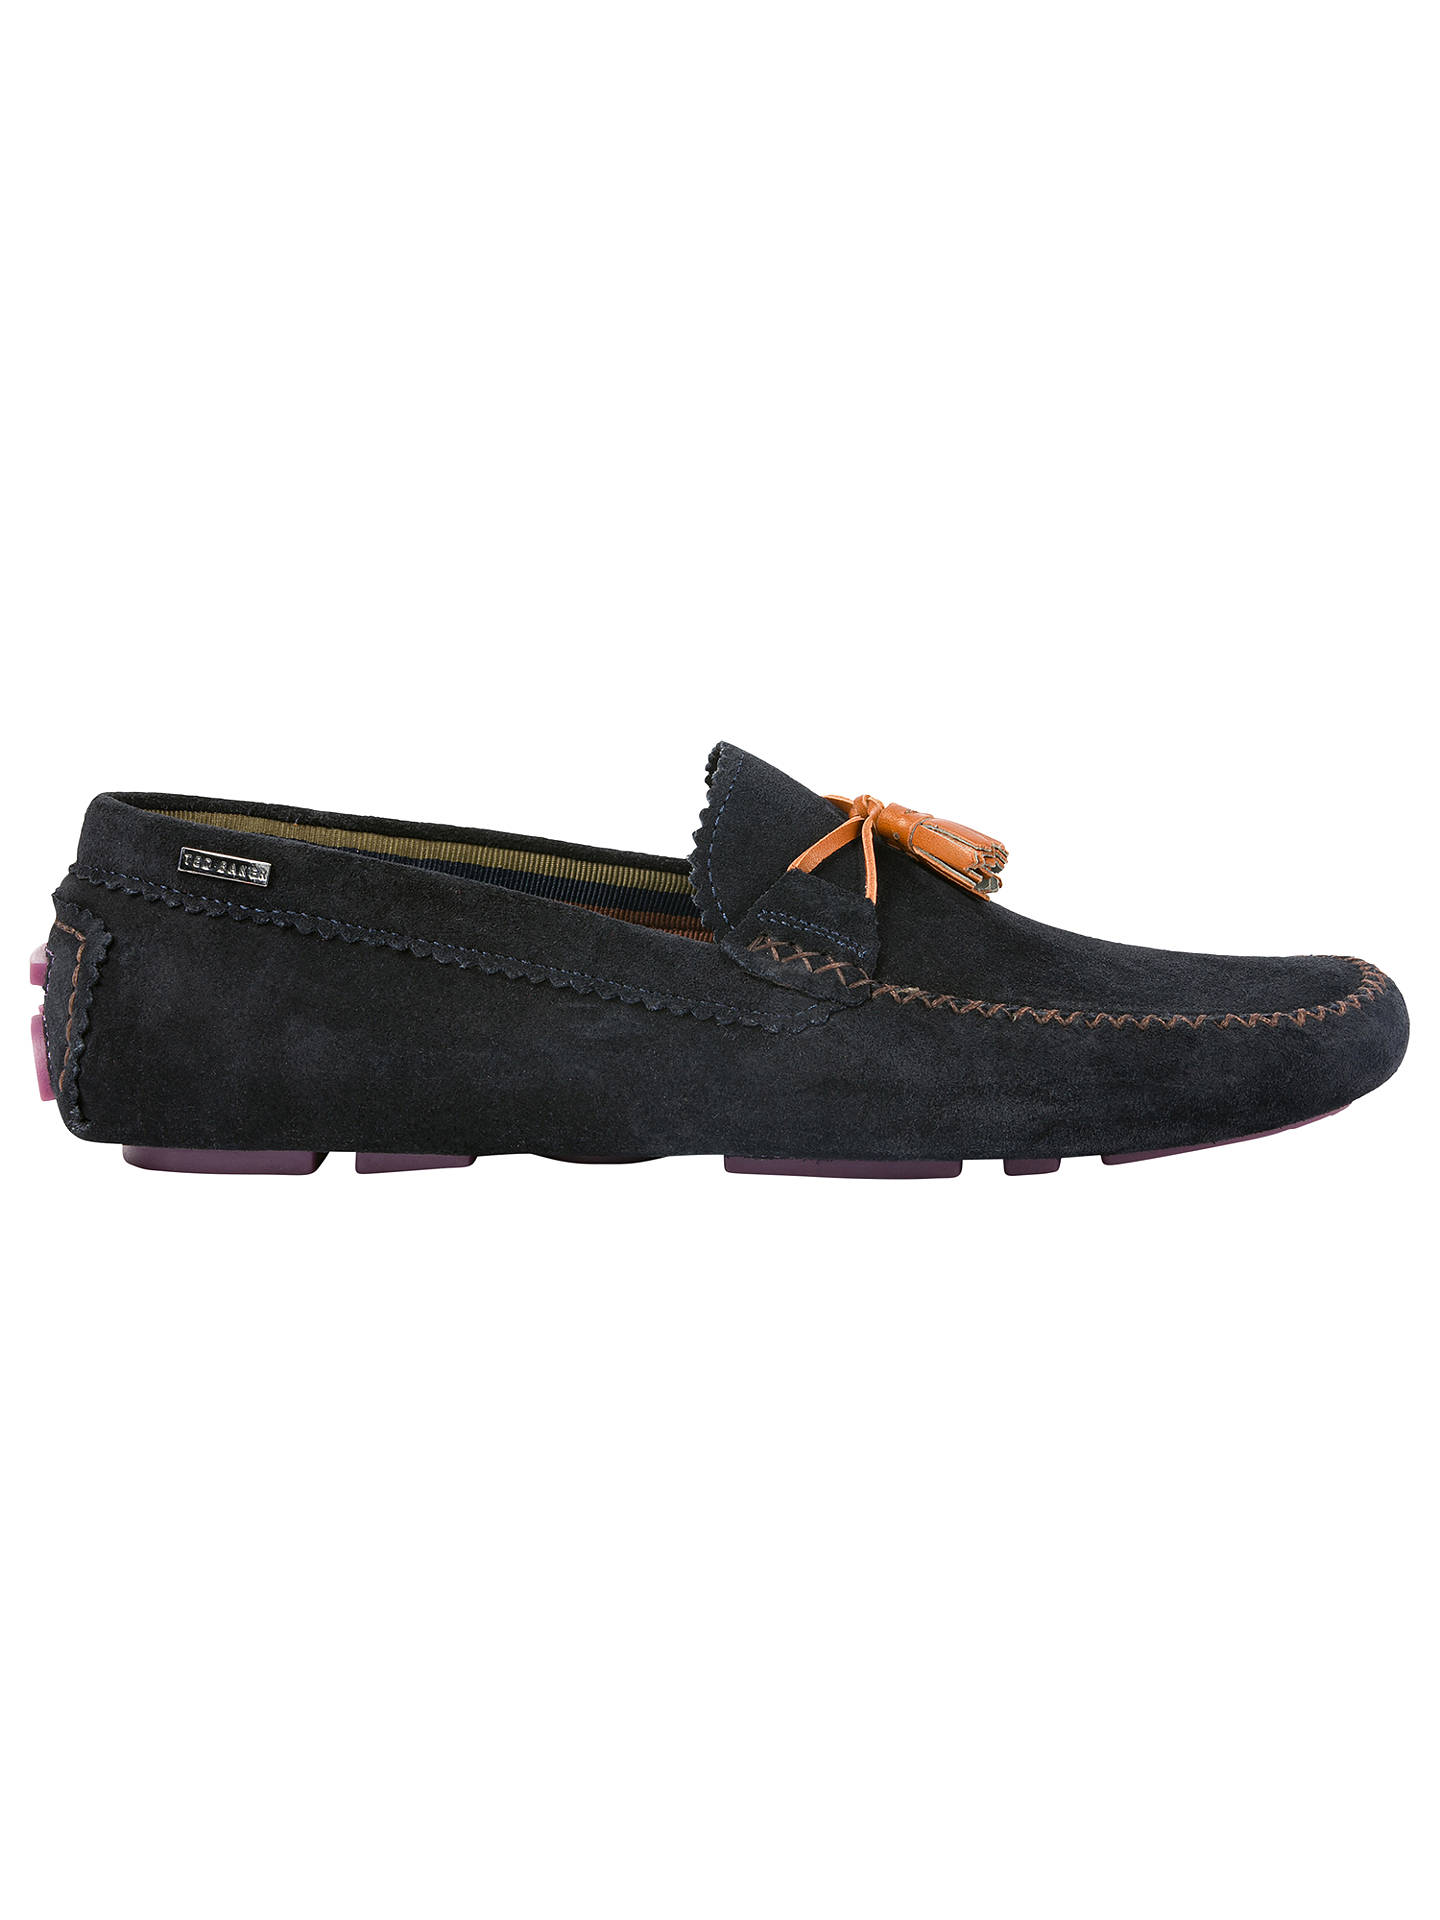 3c9bb1335aa Ted Baker Urbonns Round Toe Moccasins at John Lewis   Partners